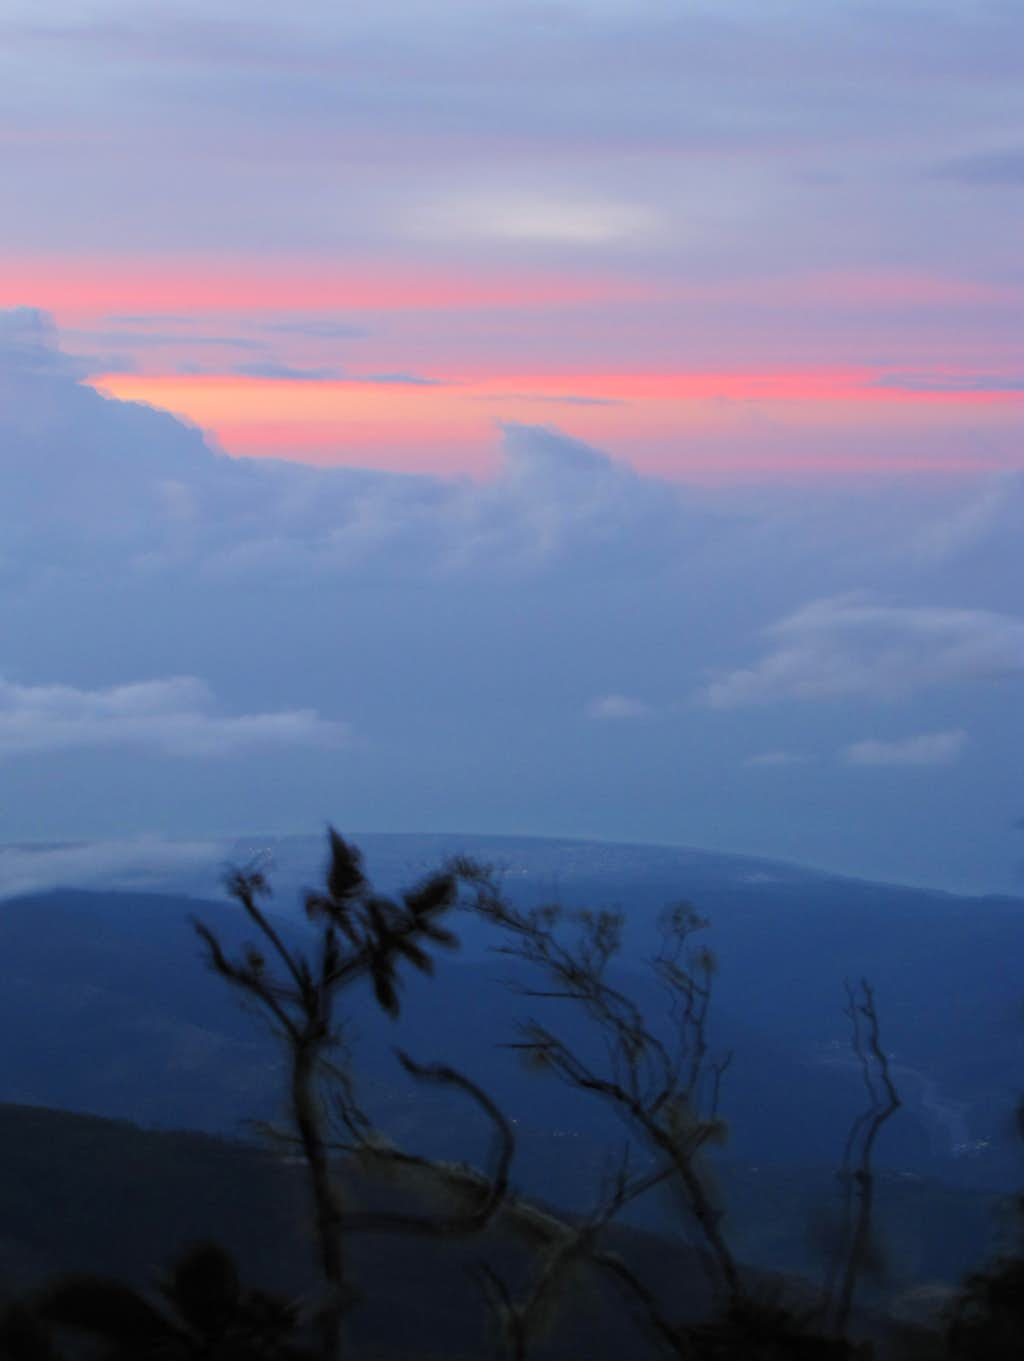 Sunrise on Blue Mountain Peak, Jamaica